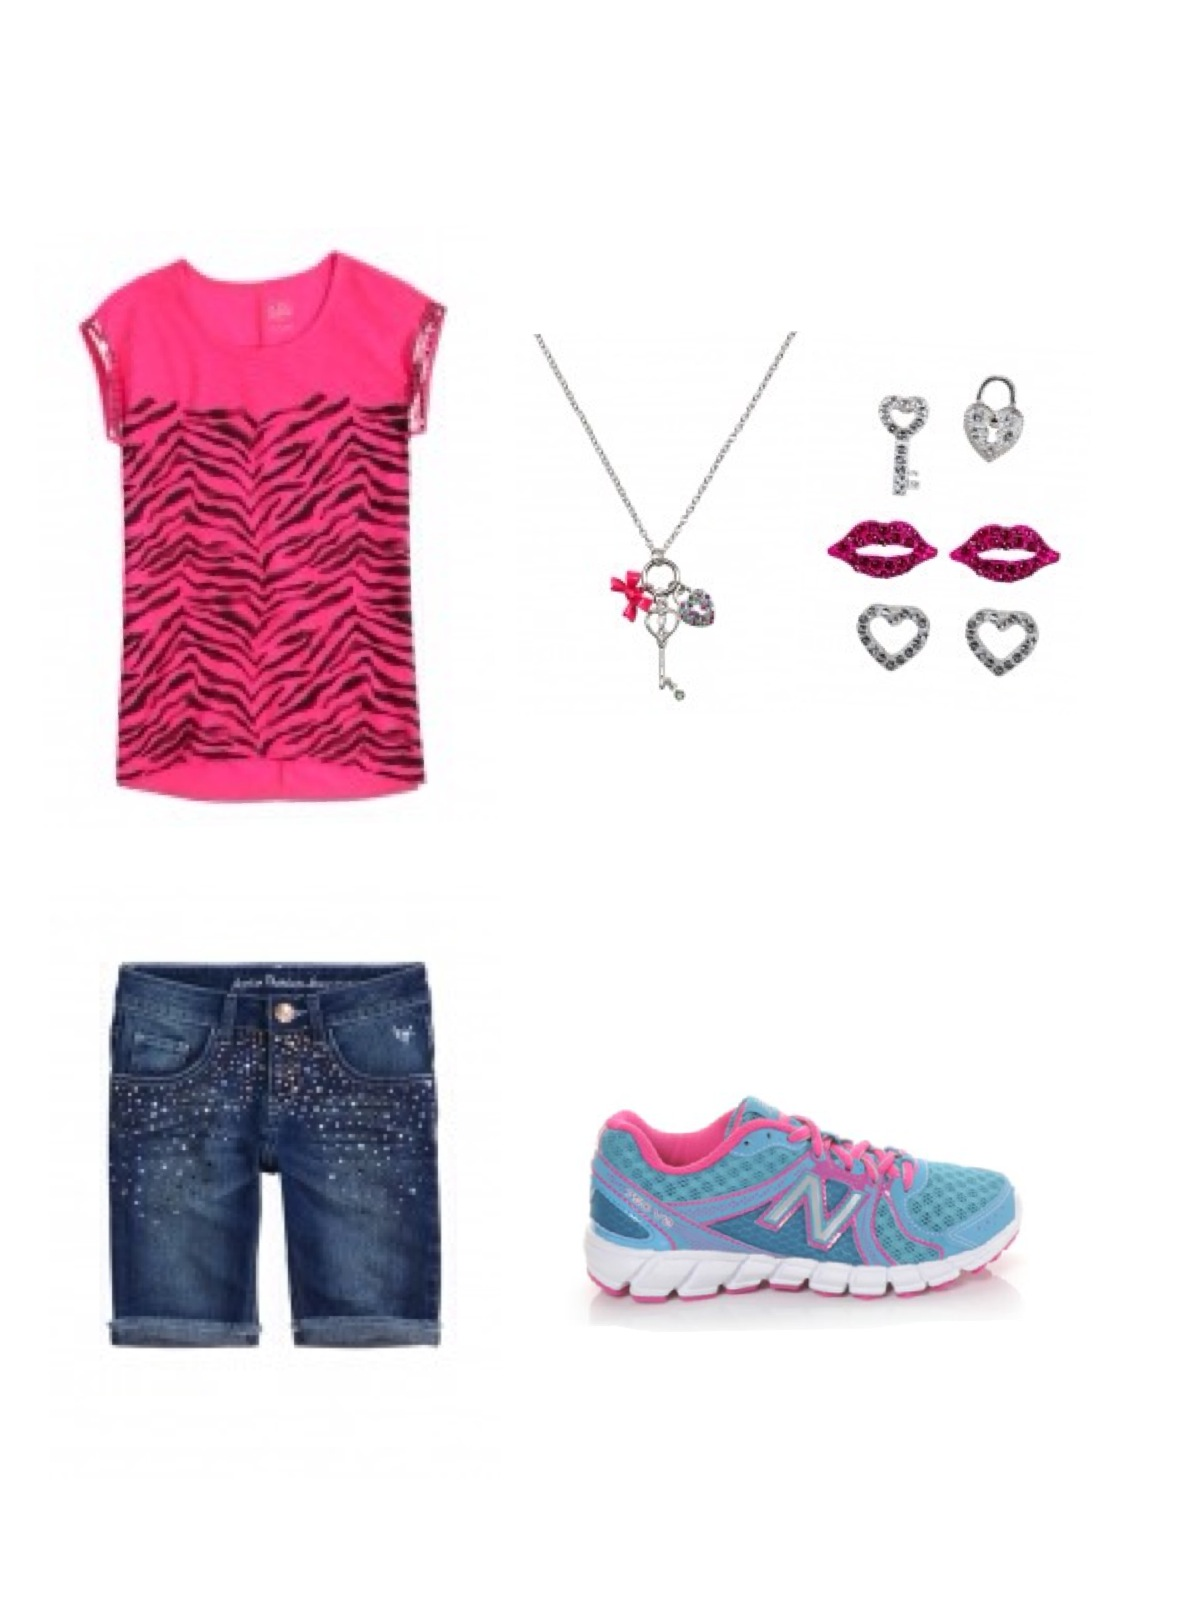 Middle School And Elementary School Back To School Outfits-4234